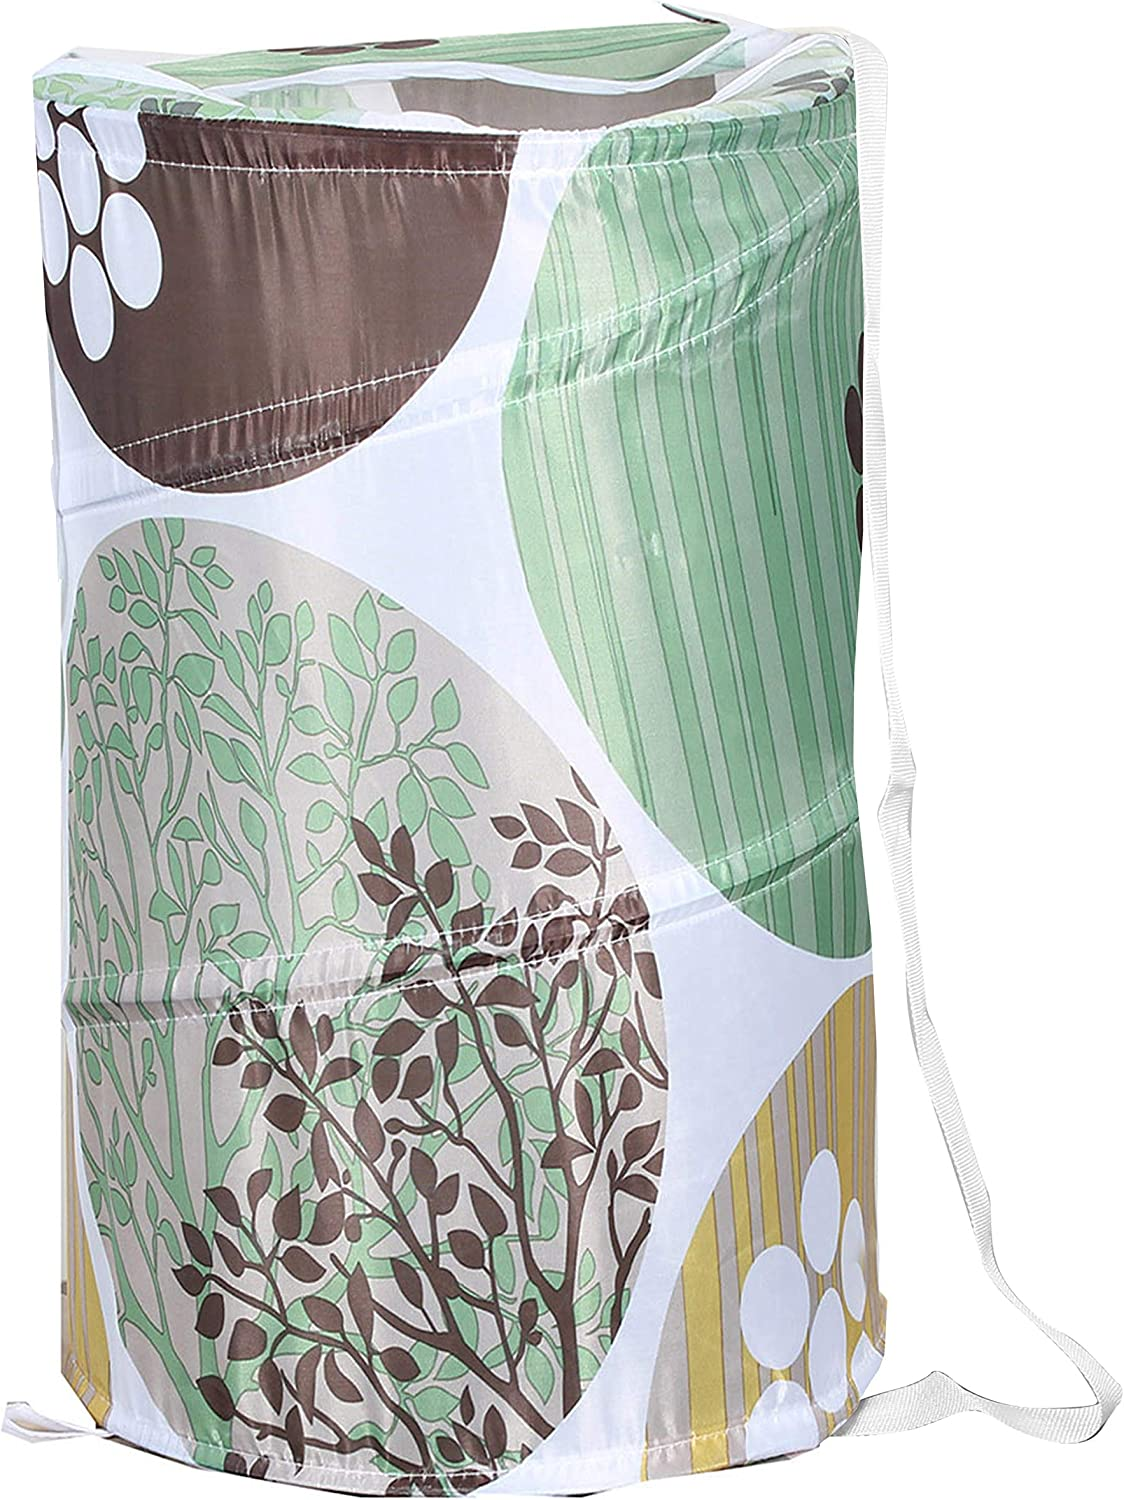 """American Dream Home Goods Laundry Basket 18""""x30"""" - Pop Up Hamper - Collapsible, Foldable Laundry Bag in Green Floral Print"""